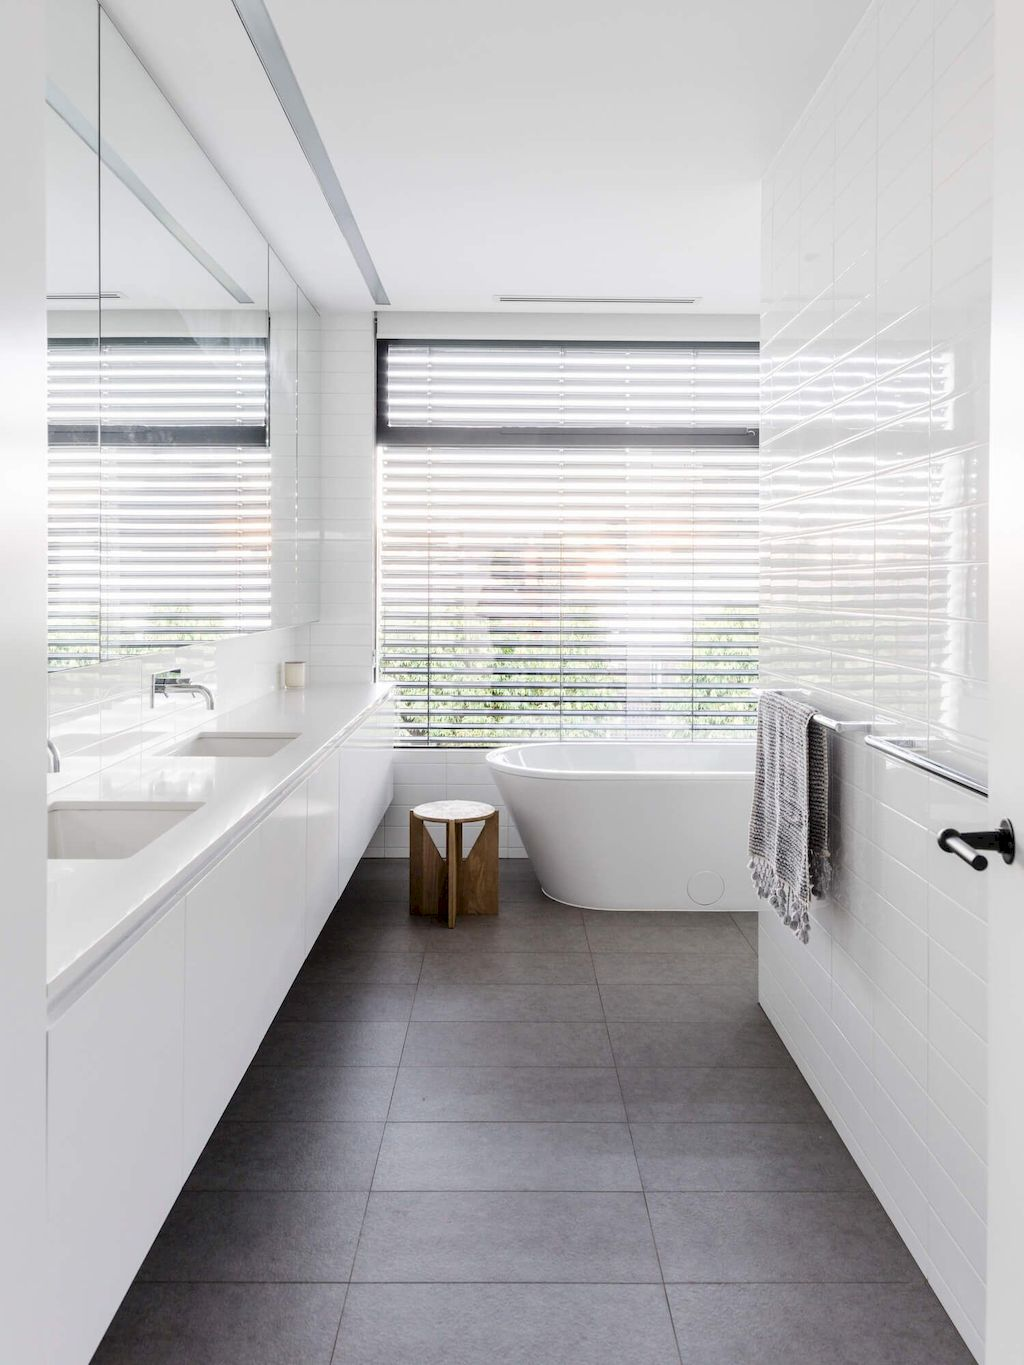 70+ Tiles Ideas for Small Bathroom - Get more Ideas in our gallery | #smallbathroom #bathroomdecoration #bathroomideas #bathroomtiles #bathroomdecor #homedecor (85)